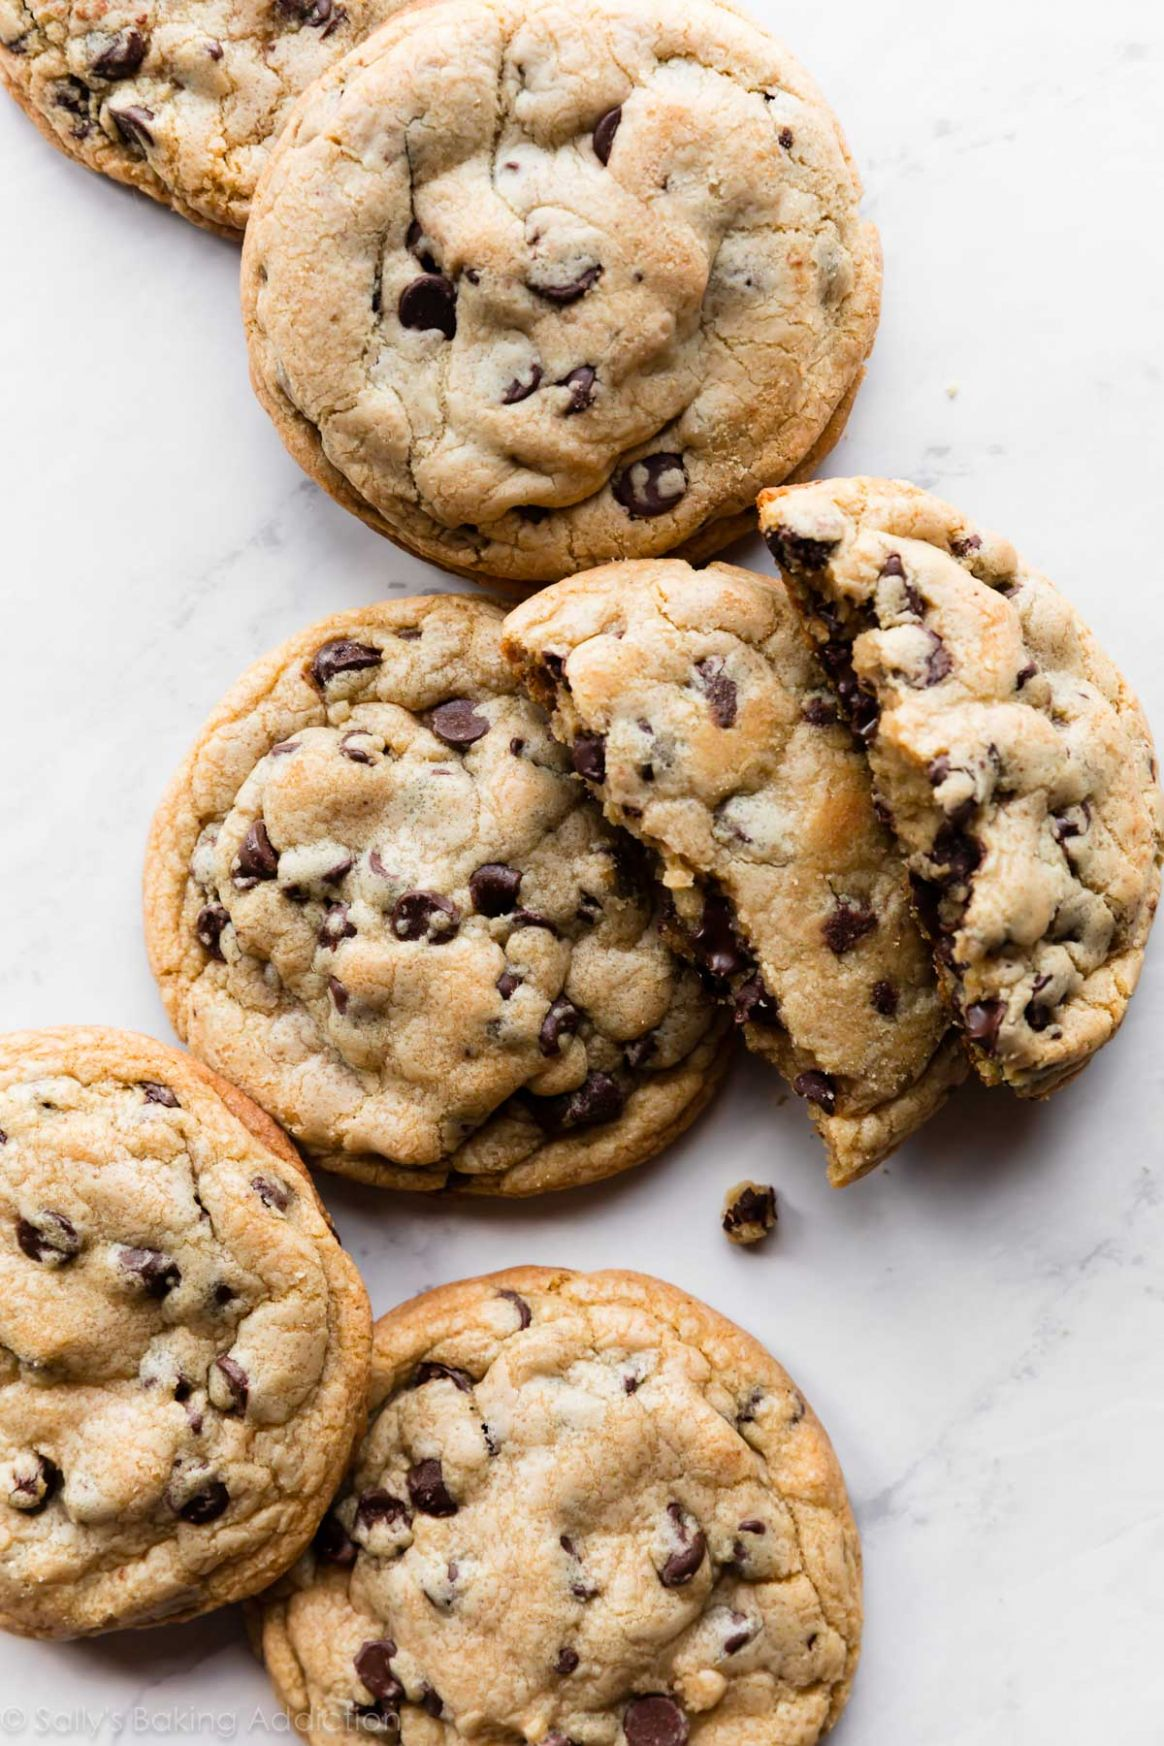 10 Giant Chocolate Chip Cookies - Chocolate Chip Recipes